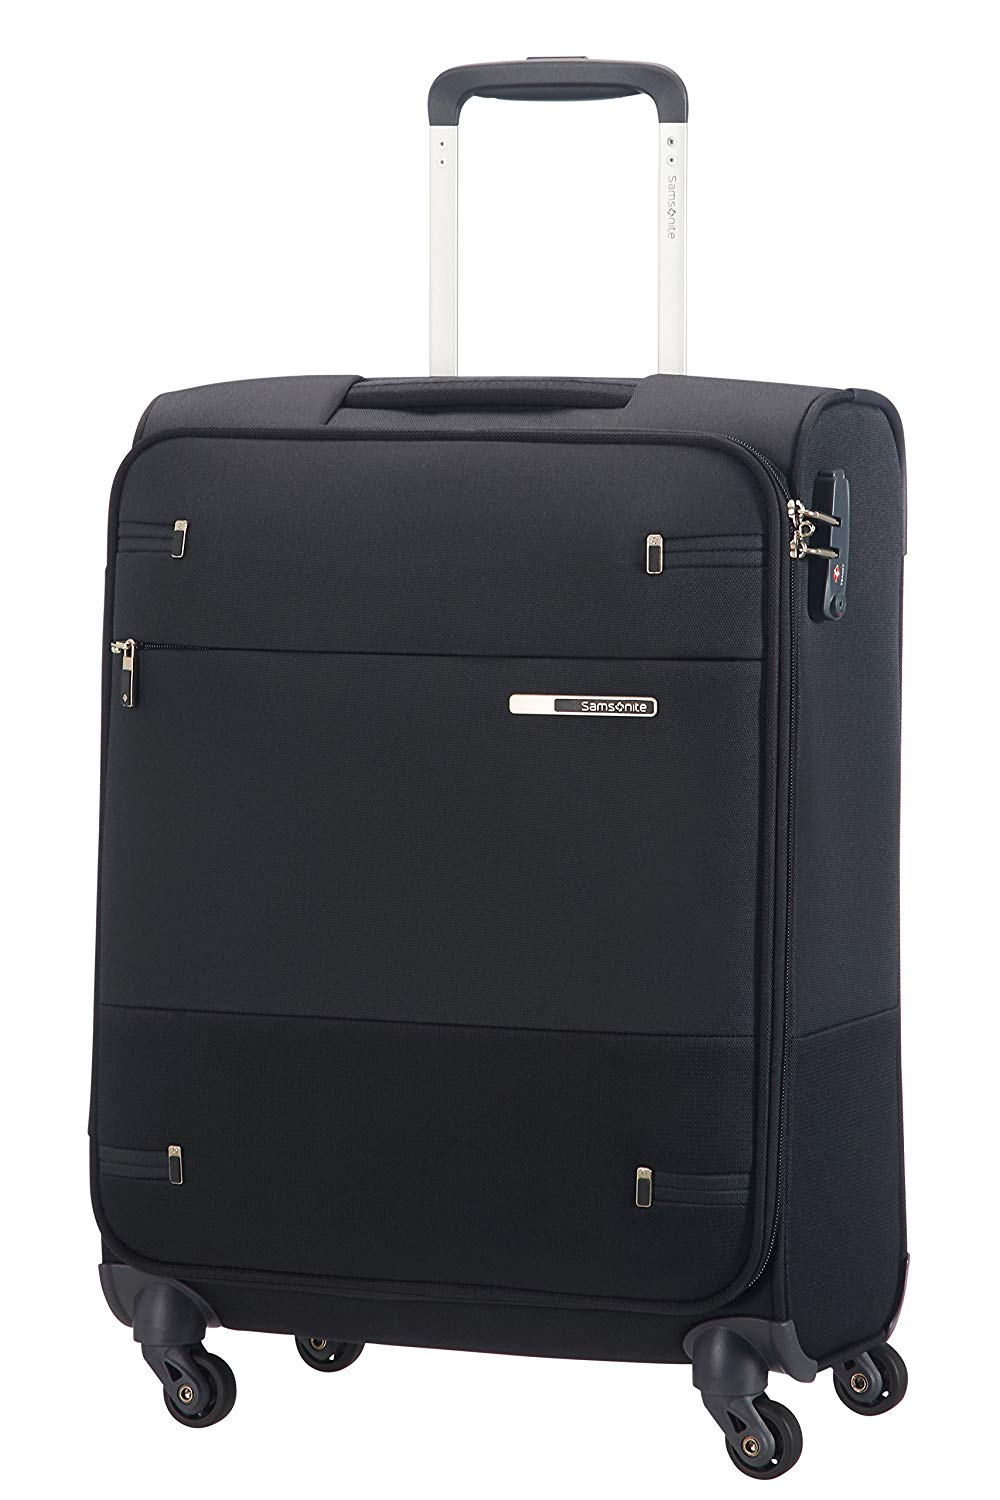 Comprar samsonite base boost spinner opiniones